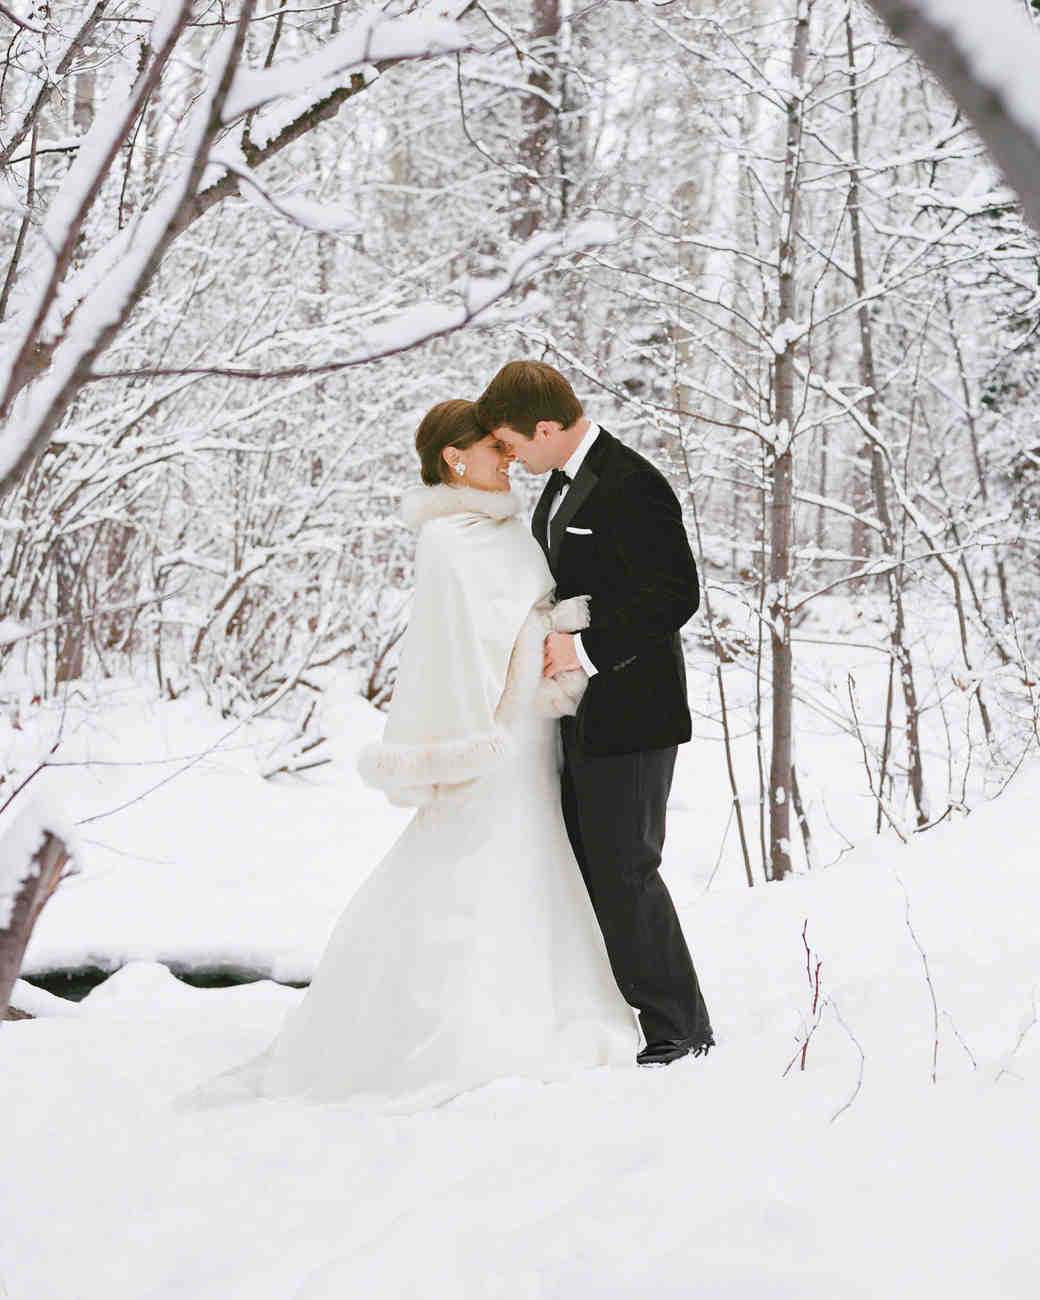 11 Snowy Wedding Photos That Will Make You Want To Get